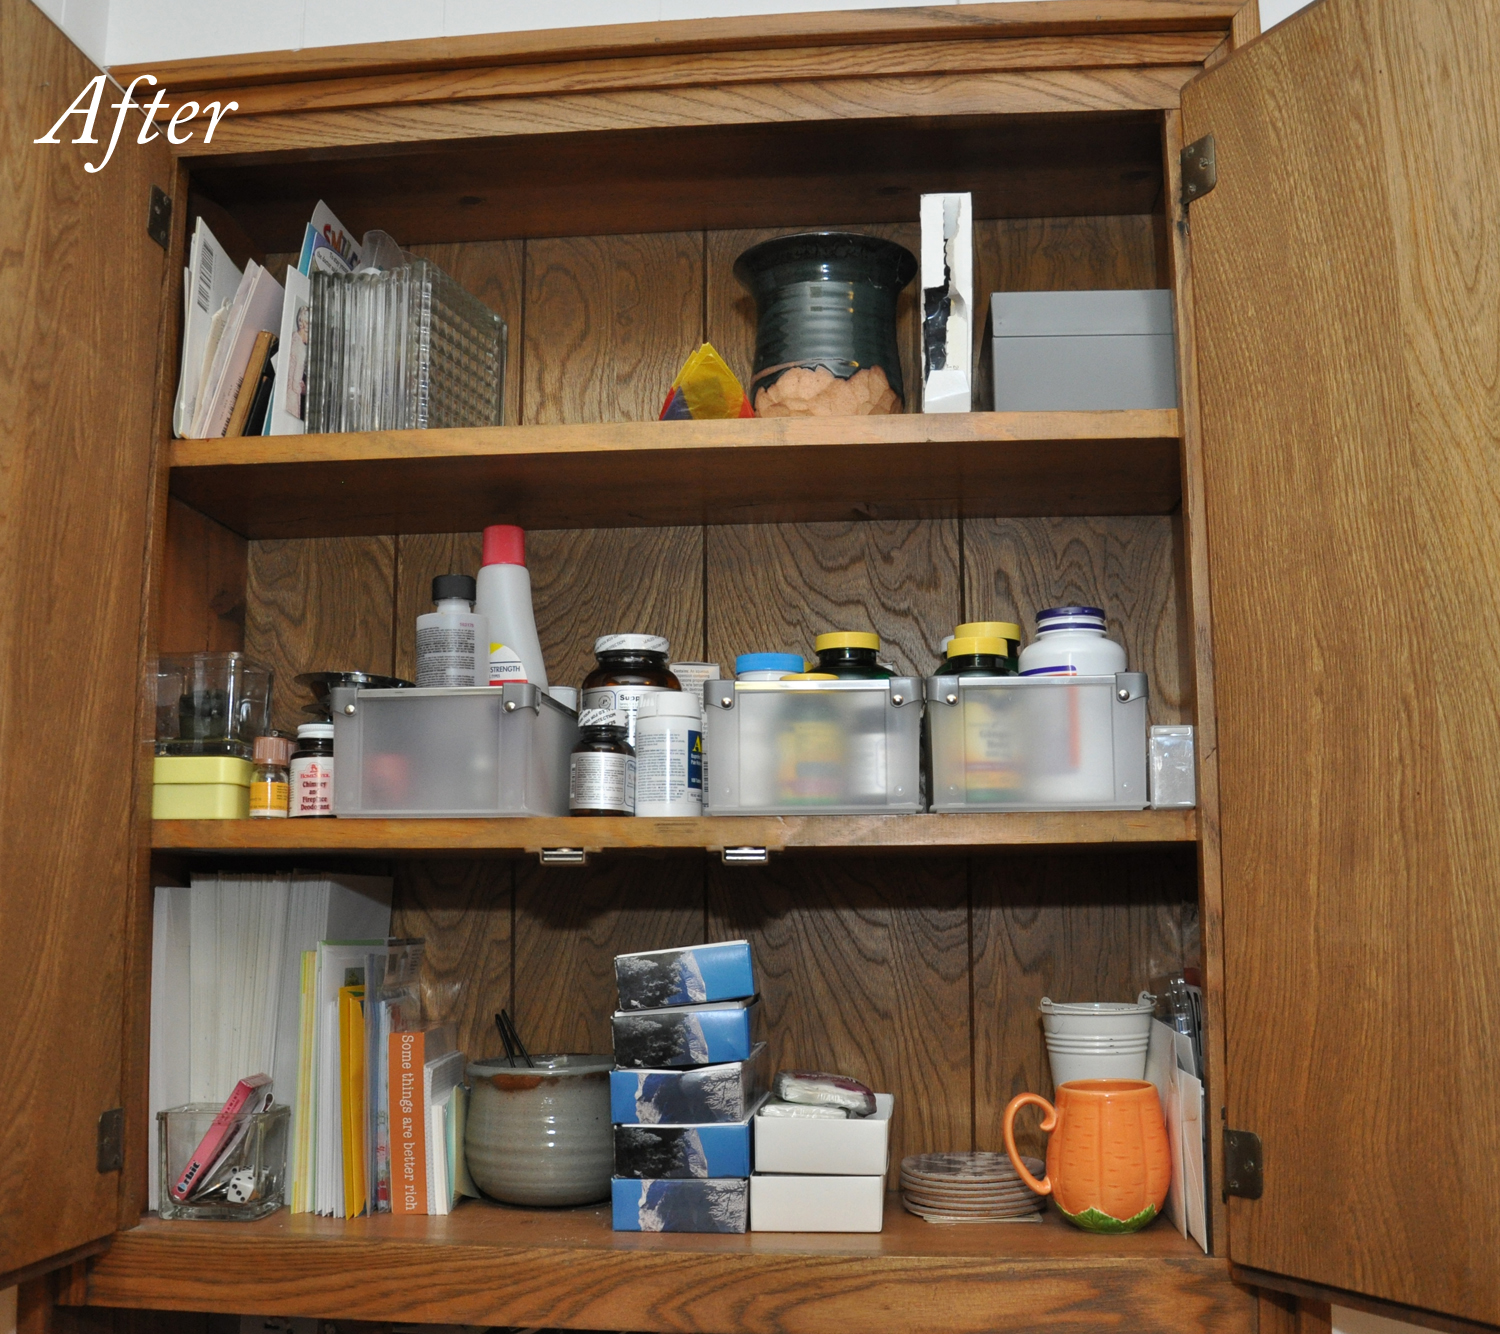 So, If I Had Been Really Crafty, Iu0027d Have Painted The Inside A Fun Color  And Papered The Shelves. As It Is, I Just Feel Better. The Other Cabinets  Are Going ...